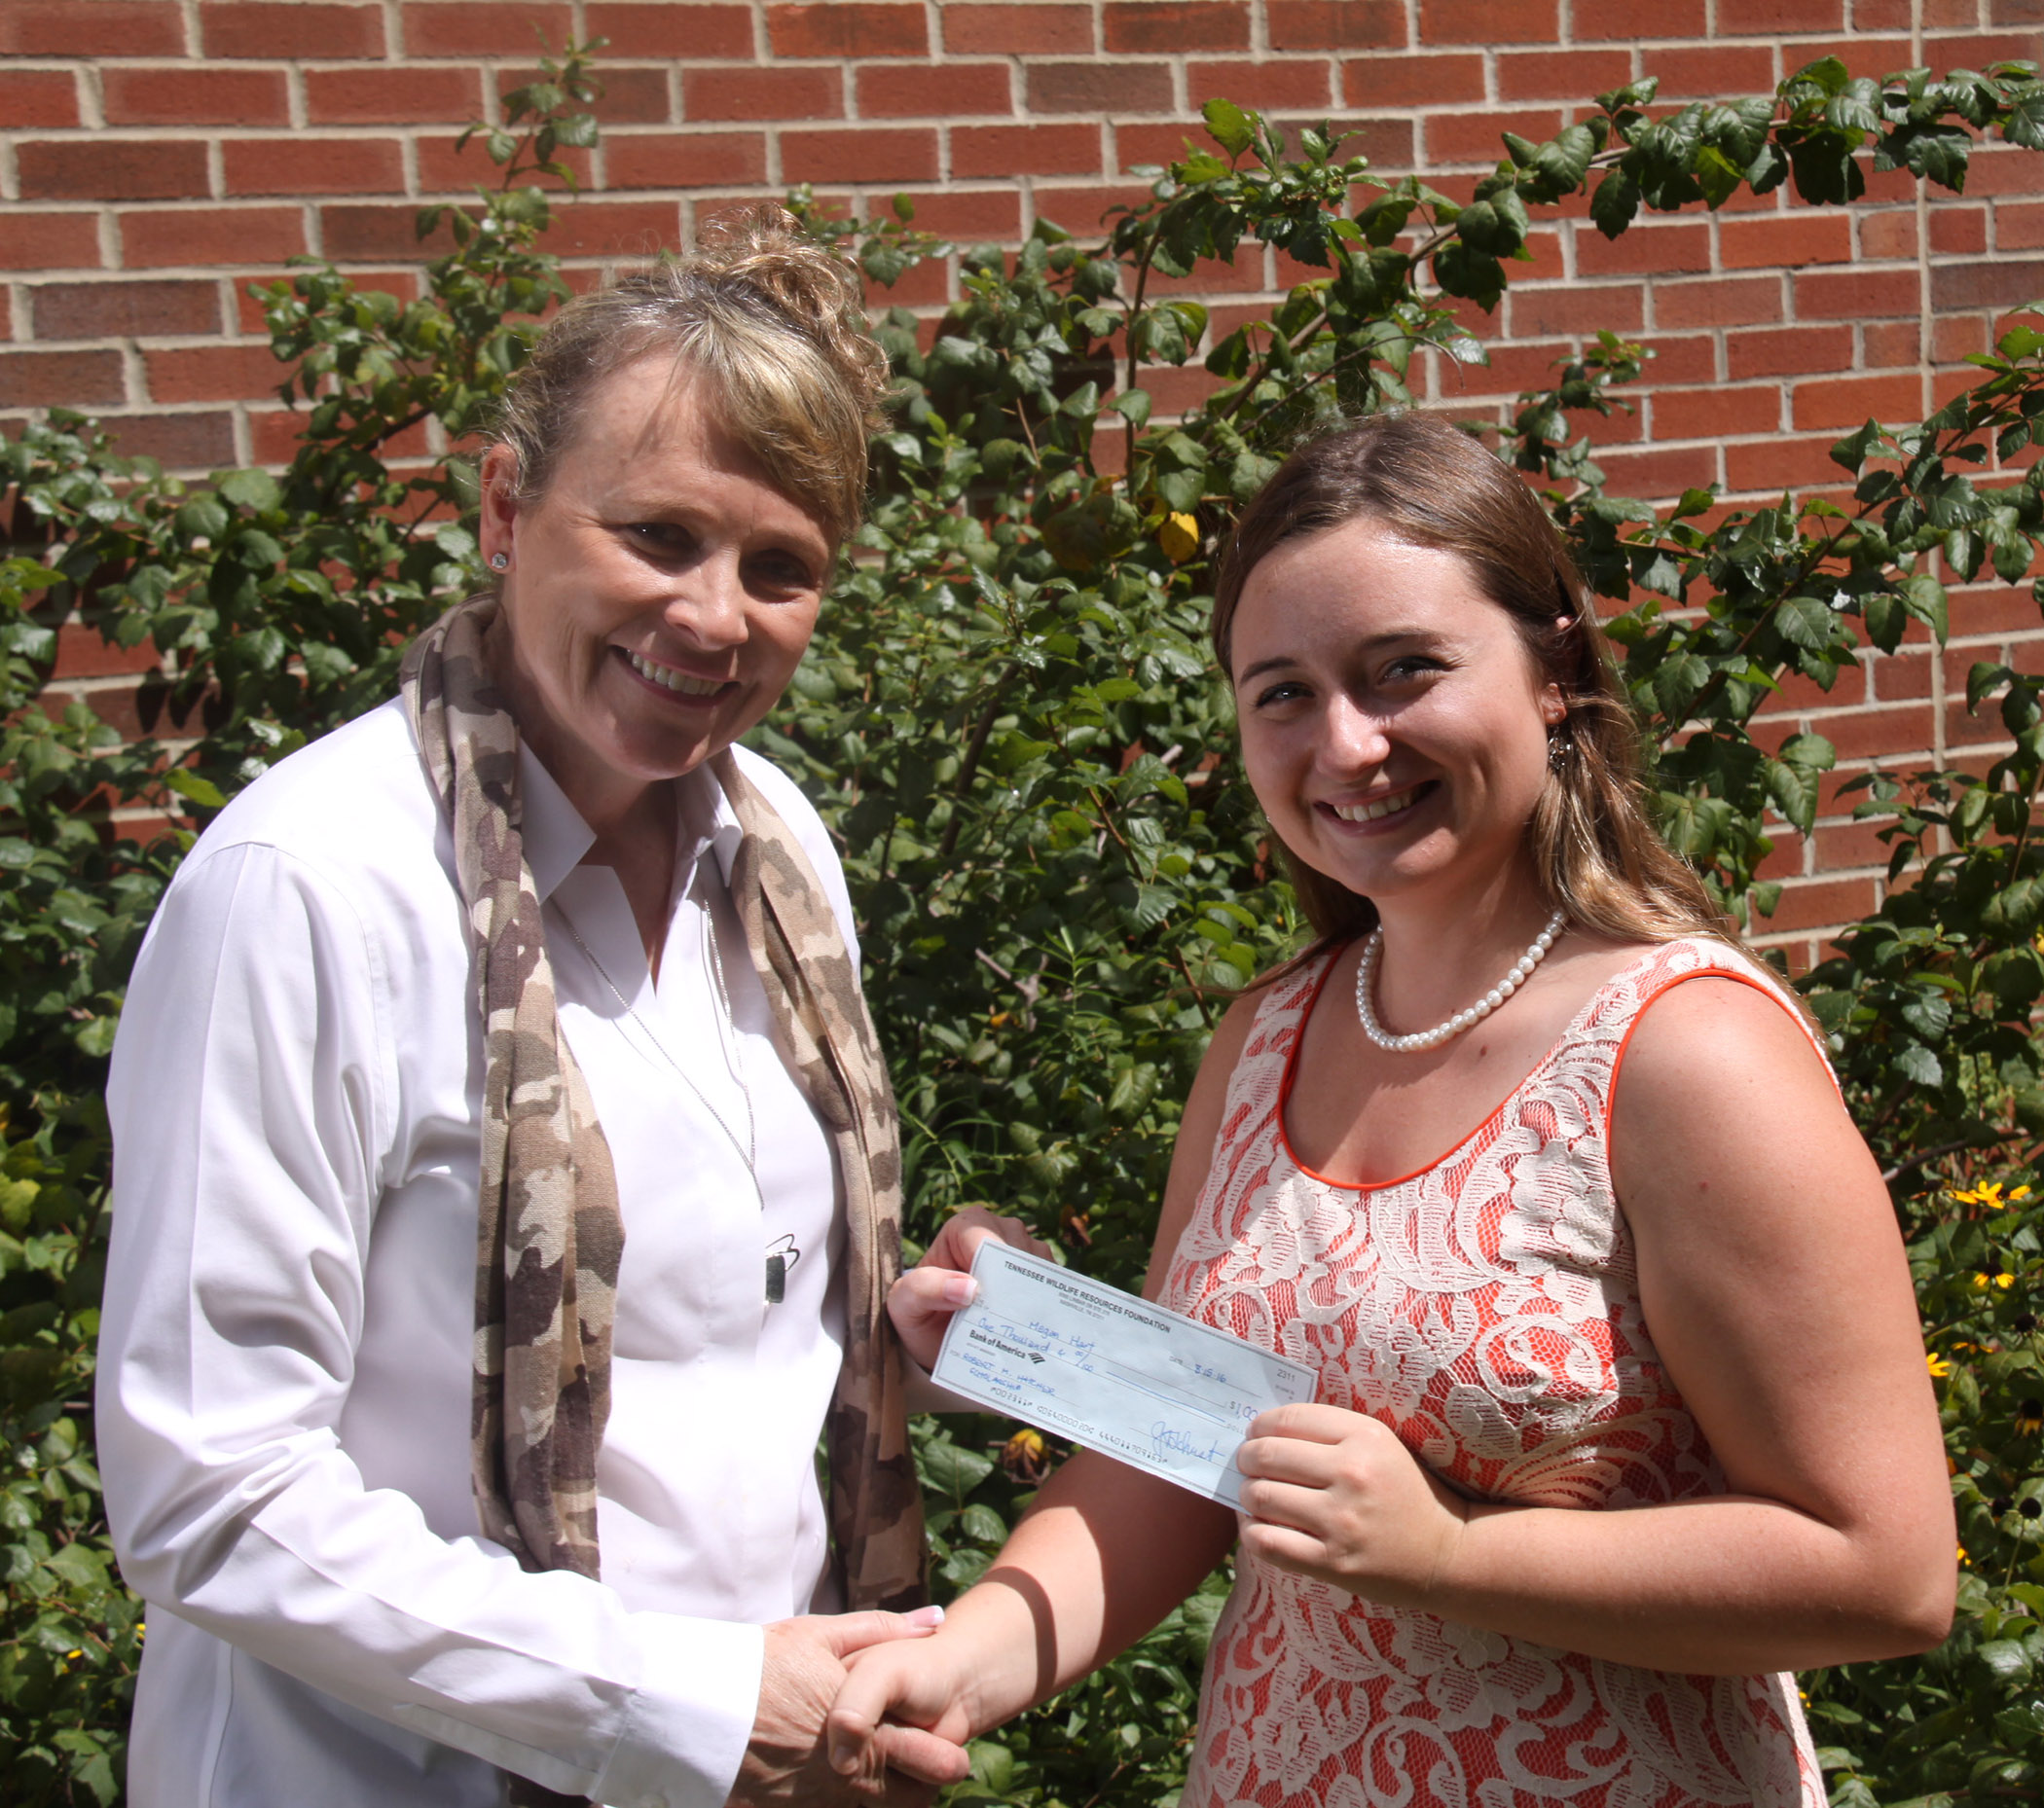 TWRF Executive Director, Julie Schuster, presents the scholarship check to Megan Hart.